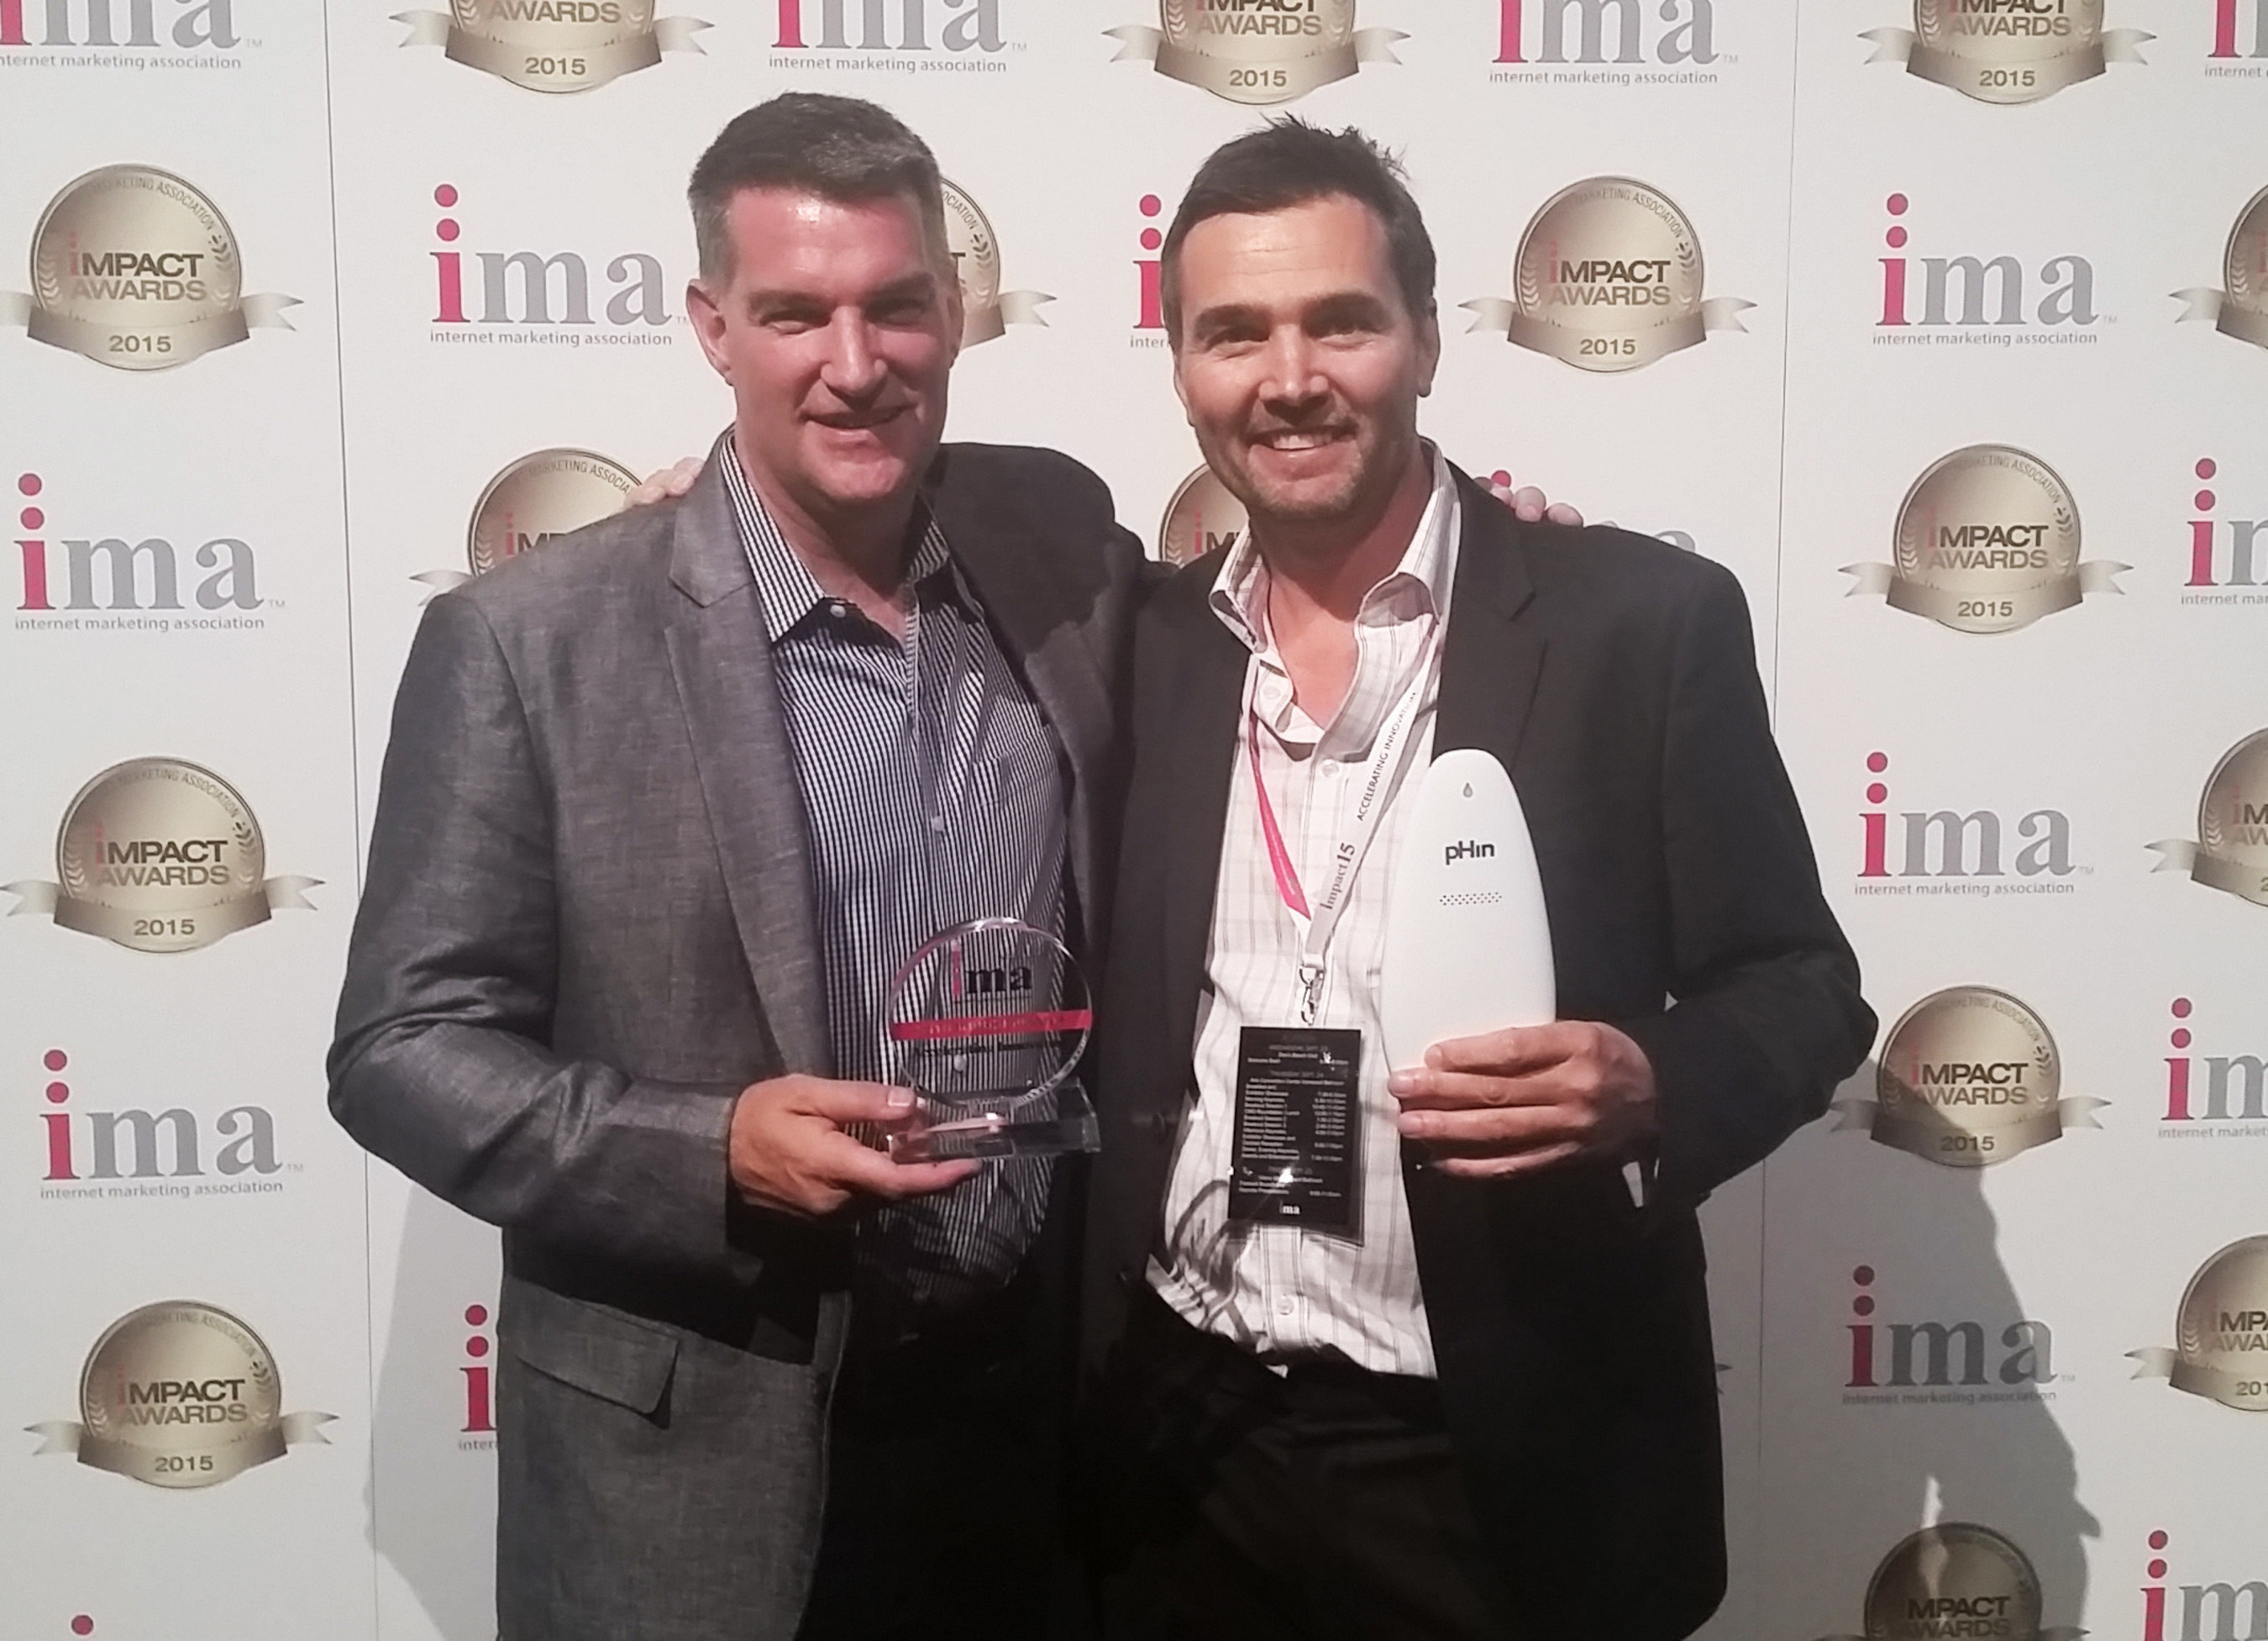 ConnectedYard Receives 'Innovator of the Year' Honors from the Internet Marketing Association (IMA) at IMPACT15 in Las Vegas